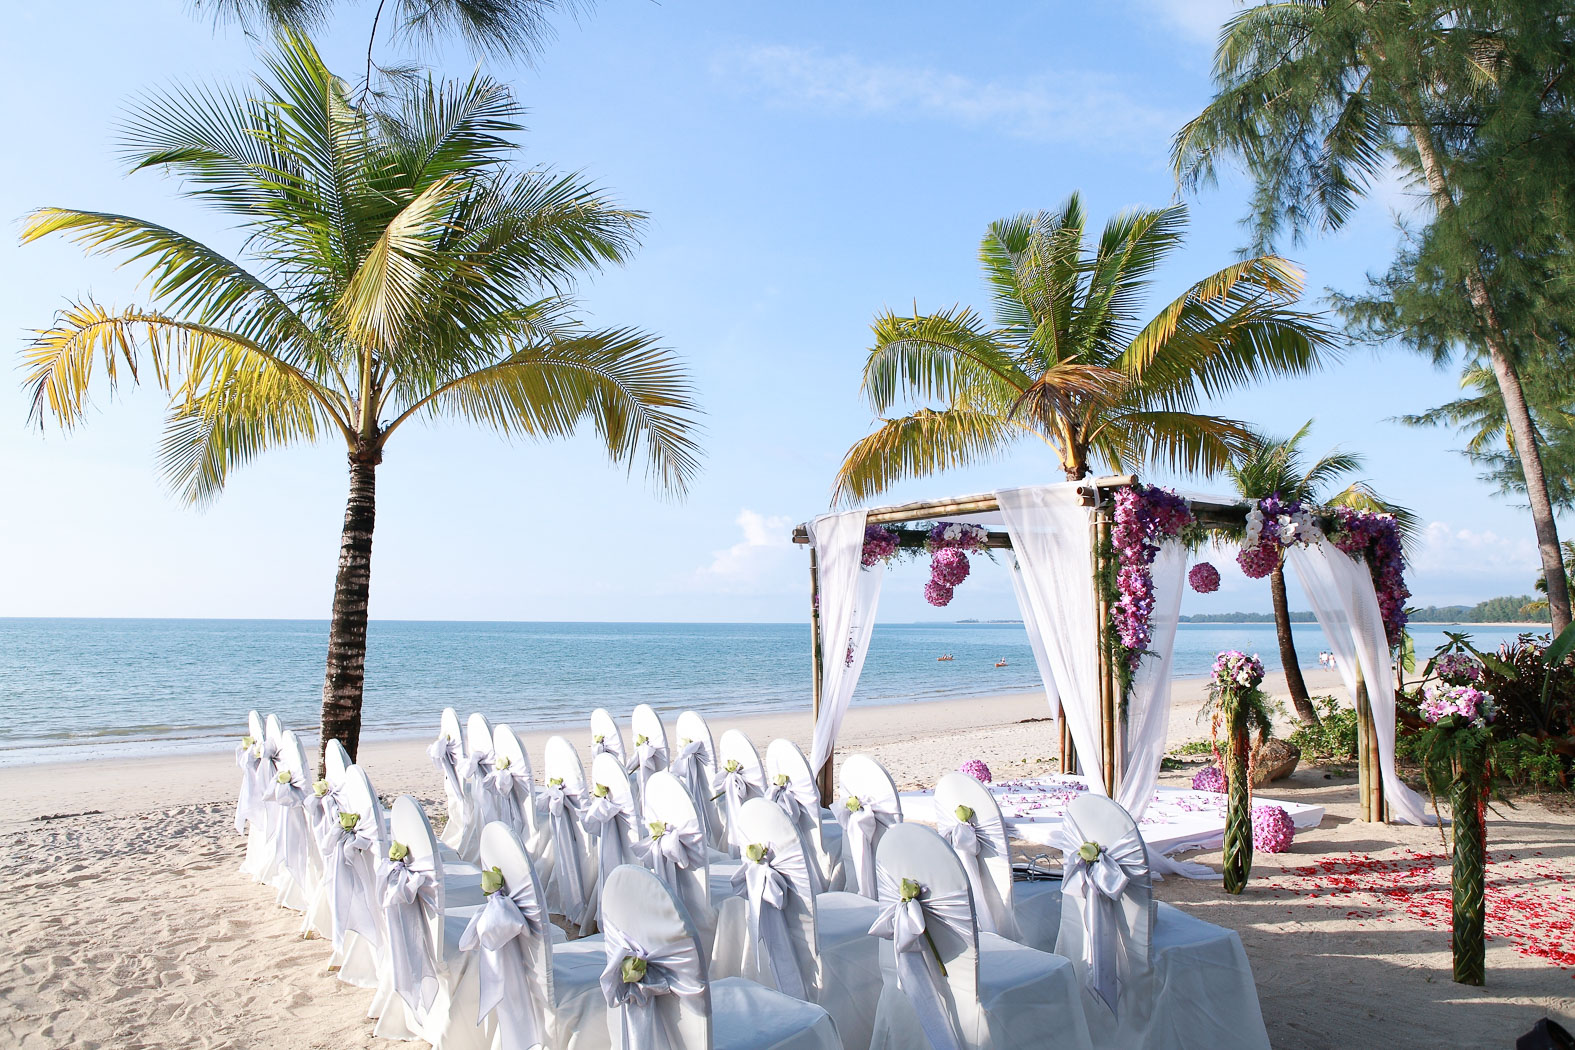 Idle Awhile Negril Jamaica Luxury Resort Private Beach Wedding Honeymoon